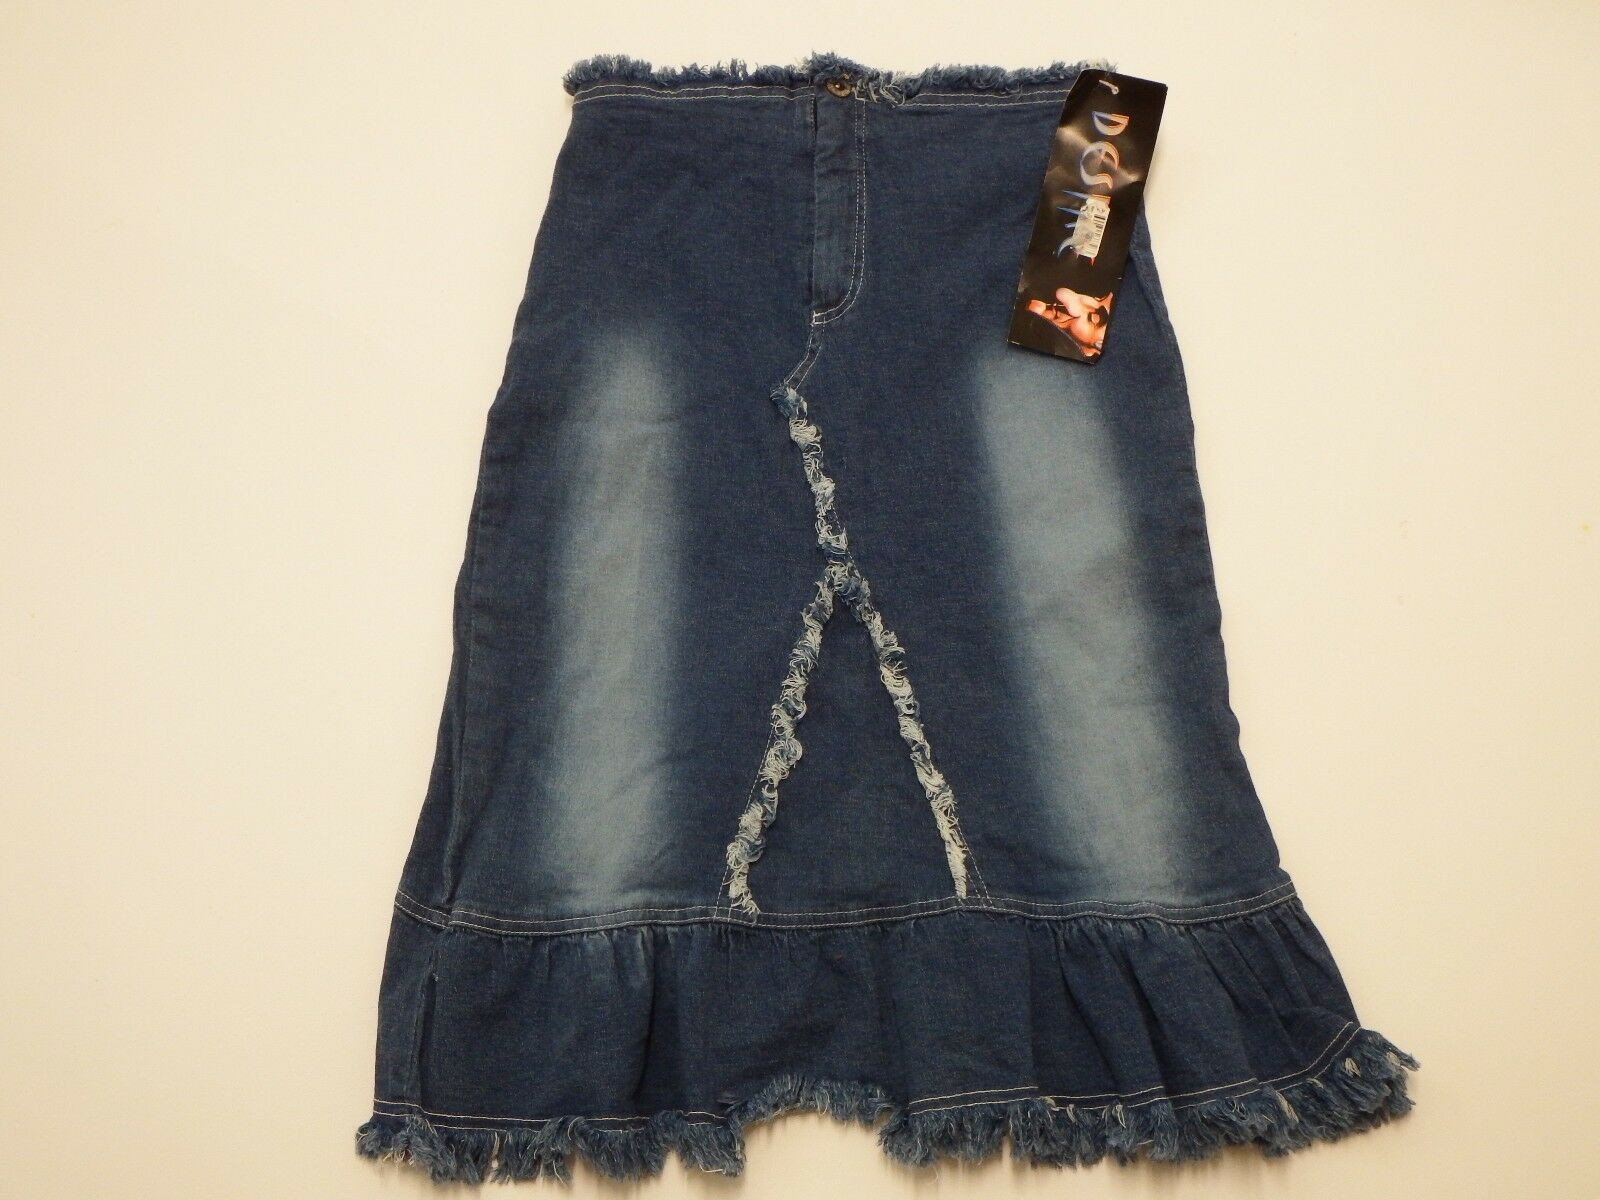 Skirt bluee Jean Denim Size 5 6 Desire